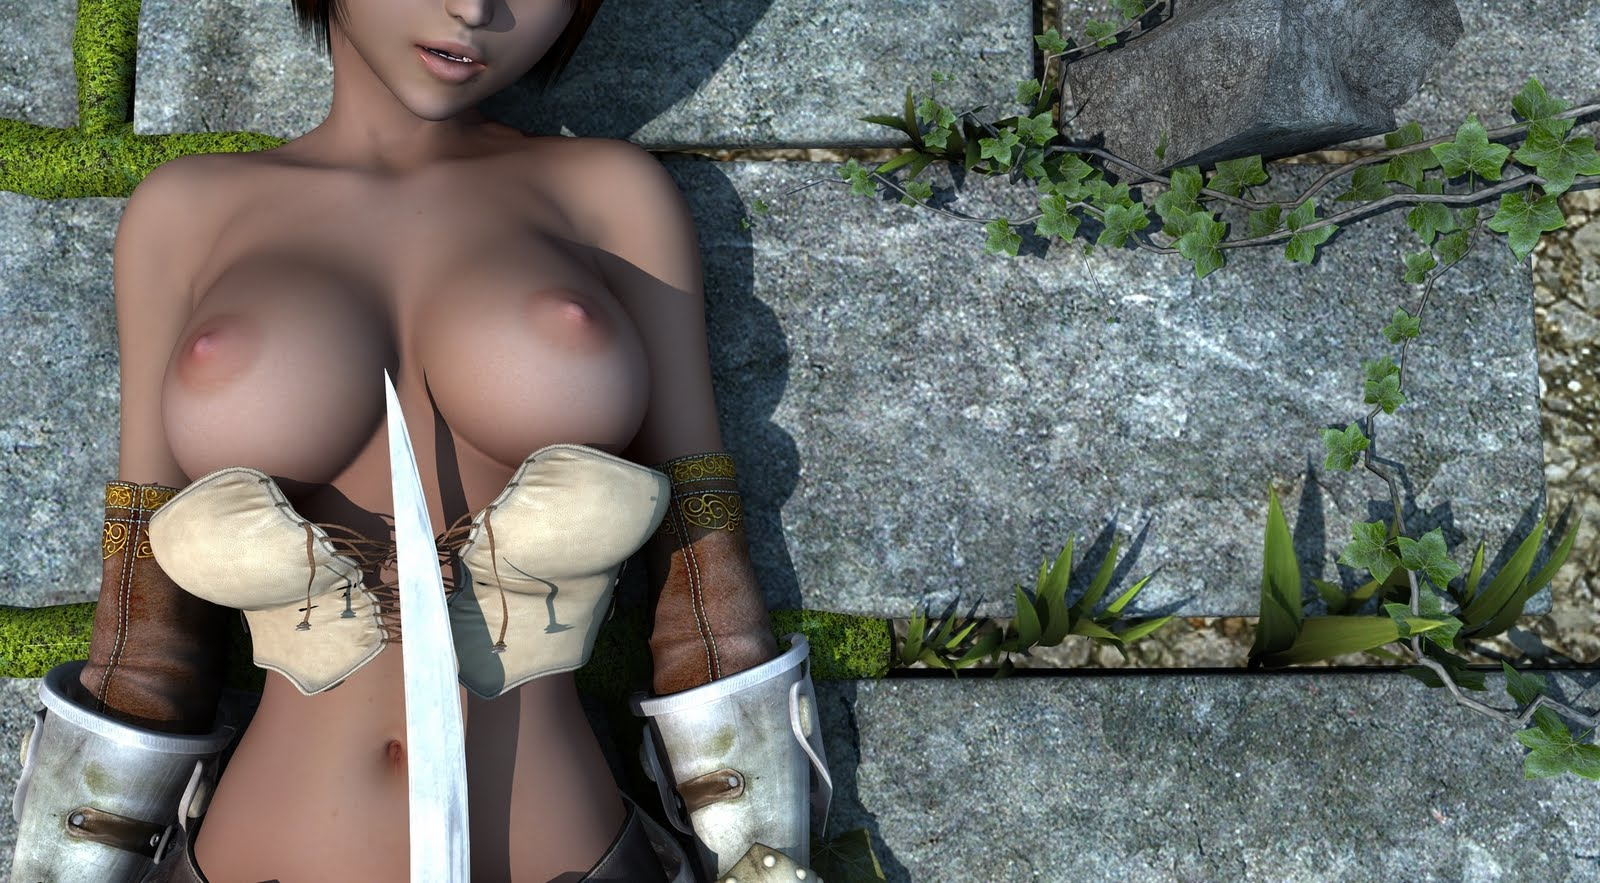 3d porncraft monster elf pic naked images